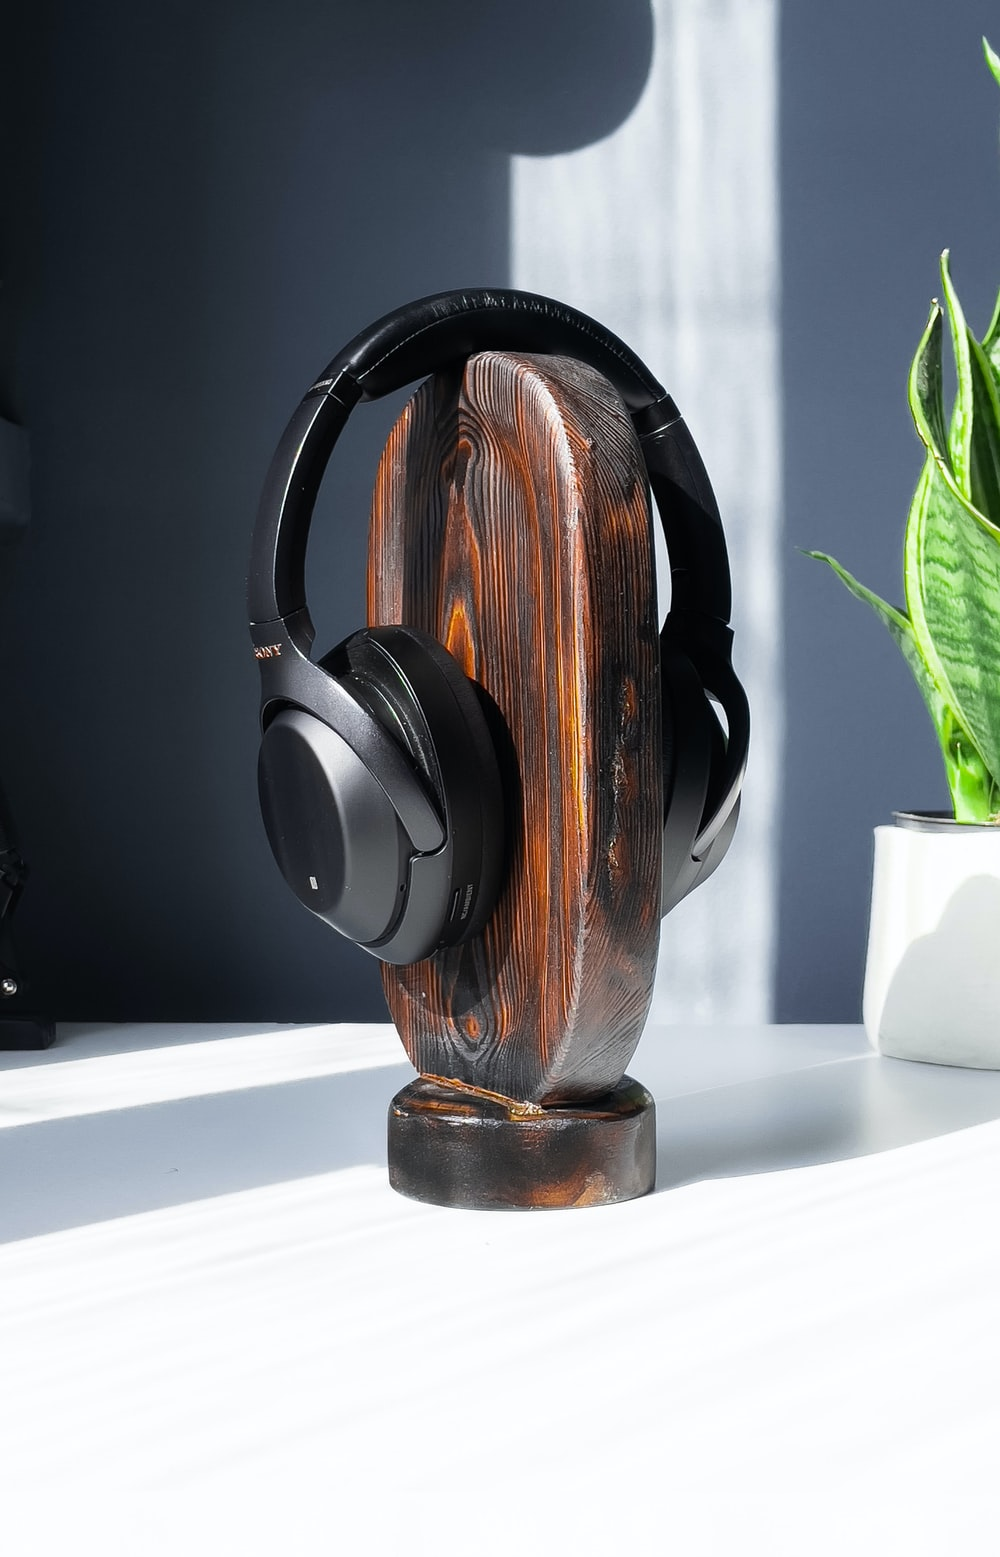 brown and black headphones on white table